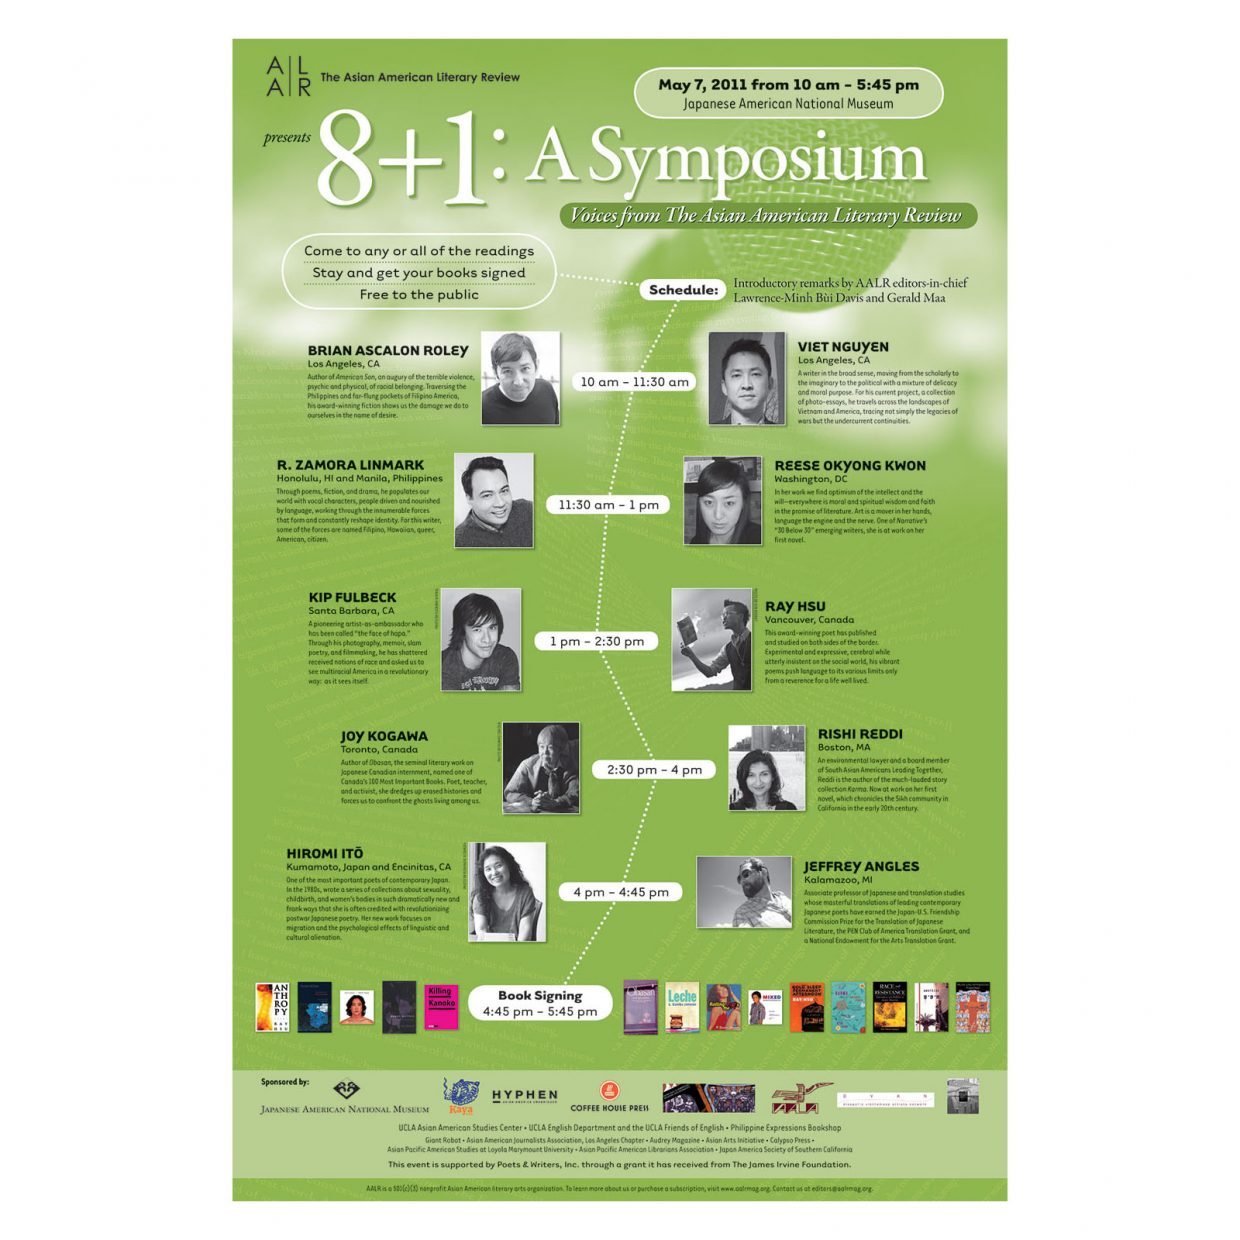 Poster for writers' symposium presented by The Asian American Literary Review, May 2011